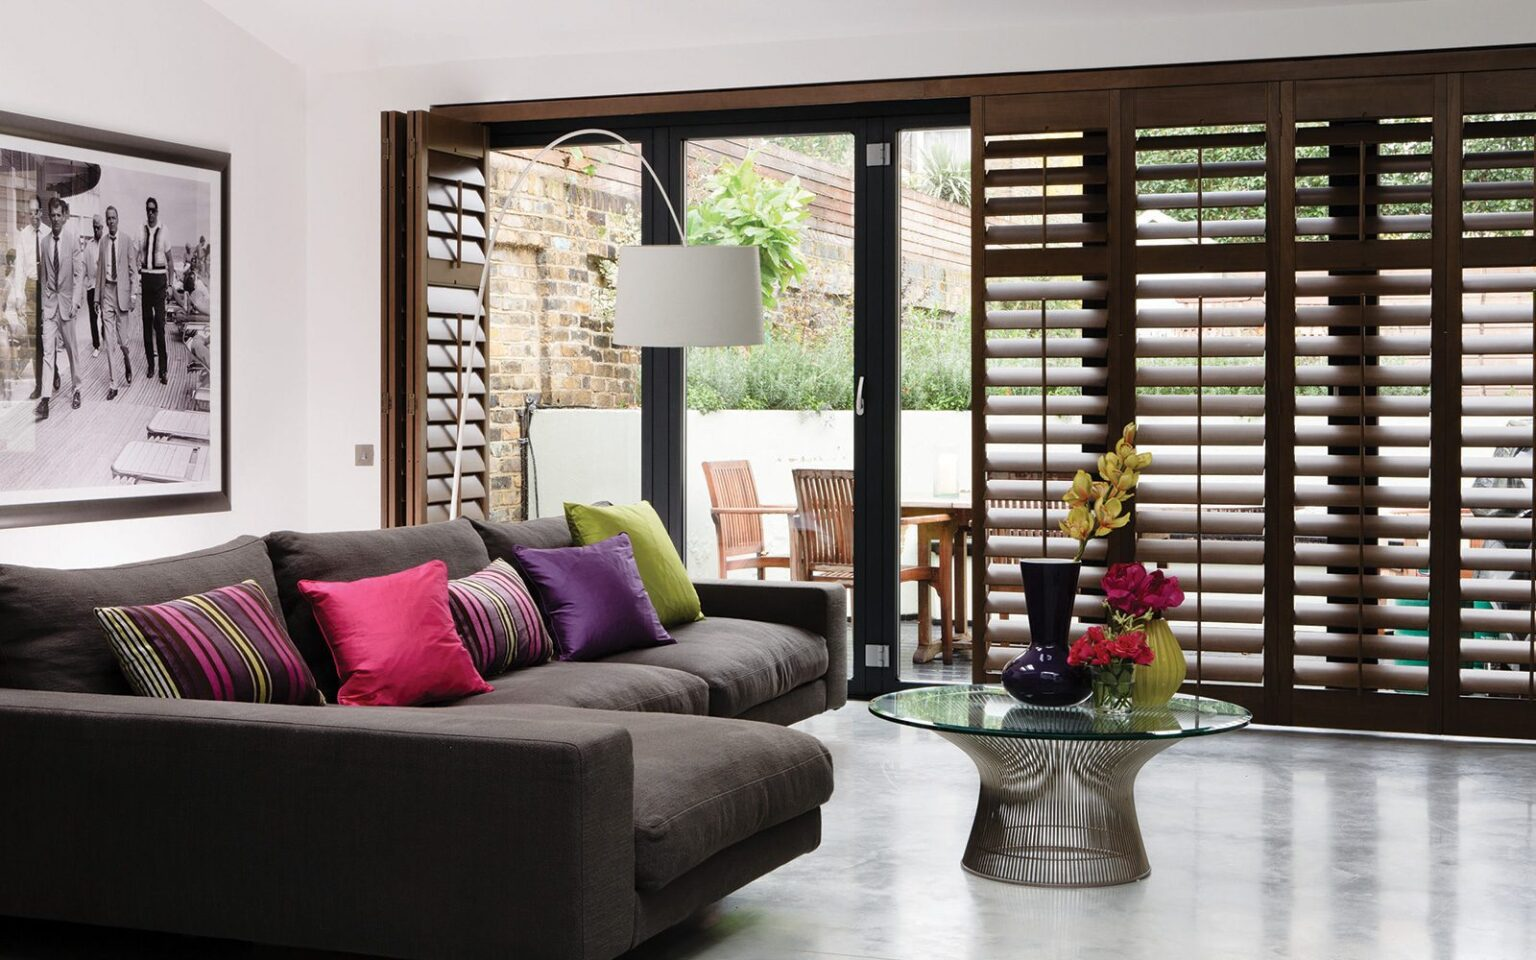 Plantation shutters Bi-fold doors in a living room